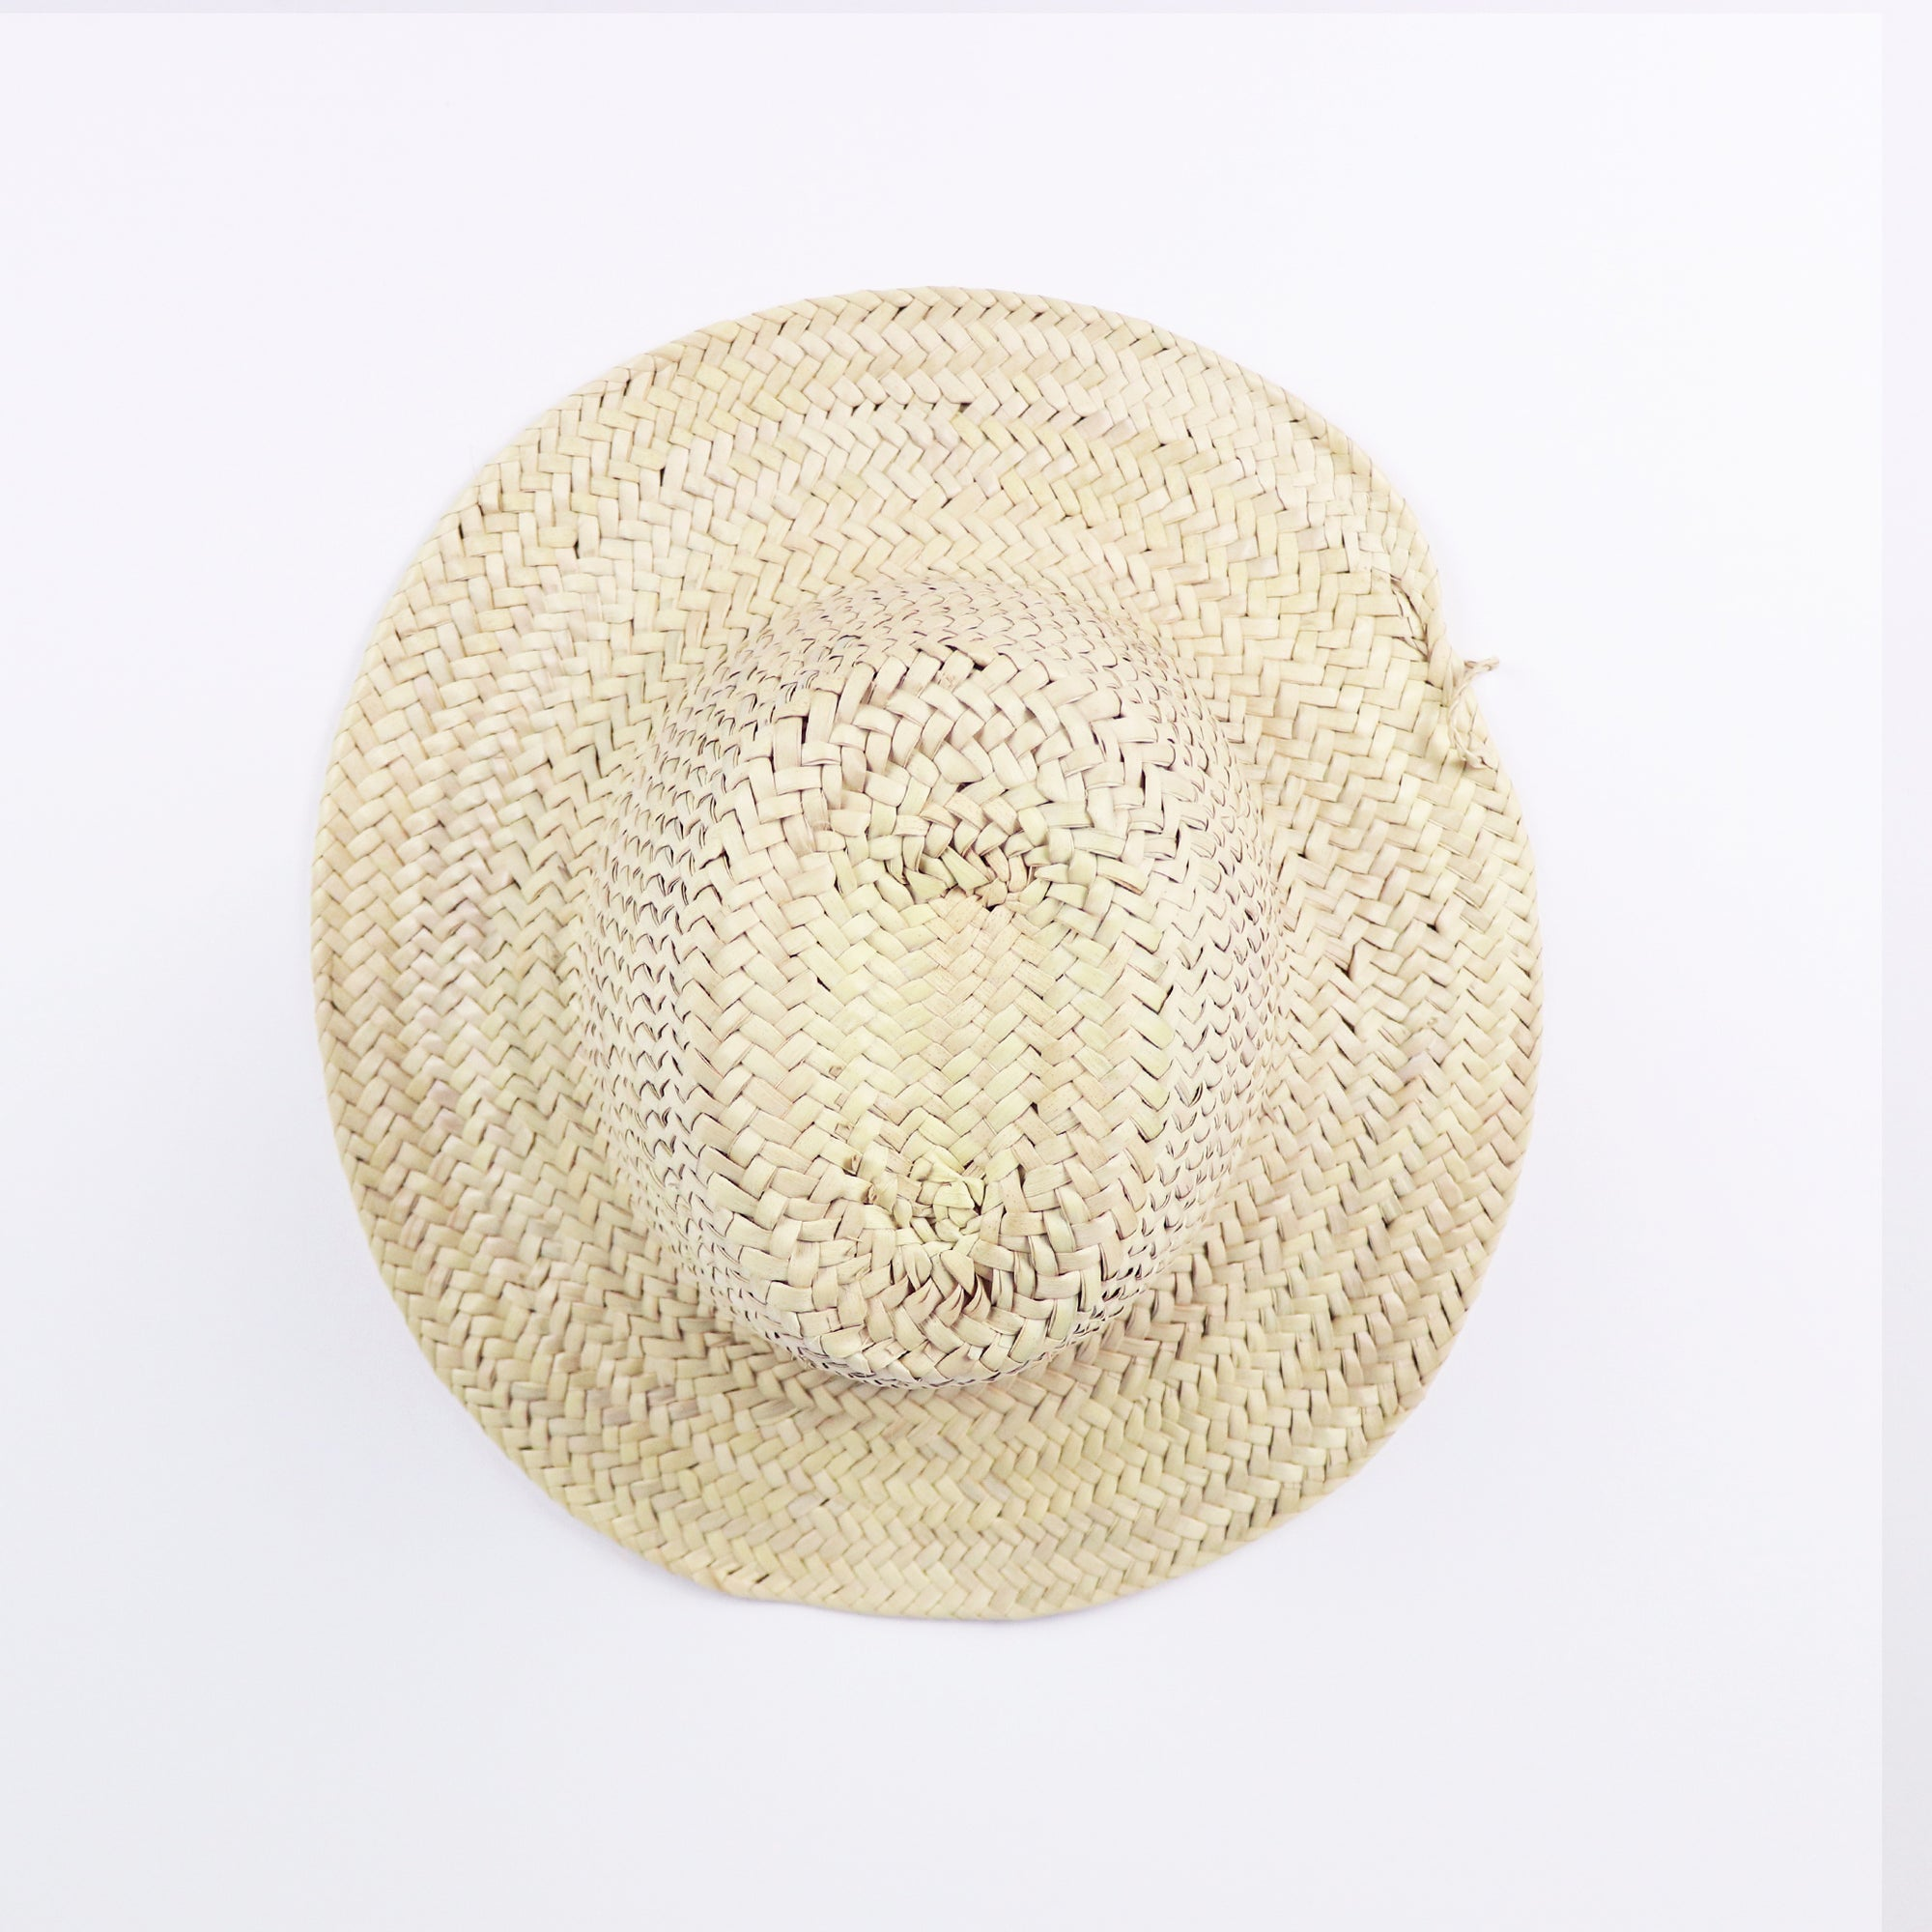 Edward Decorative Straw Hat